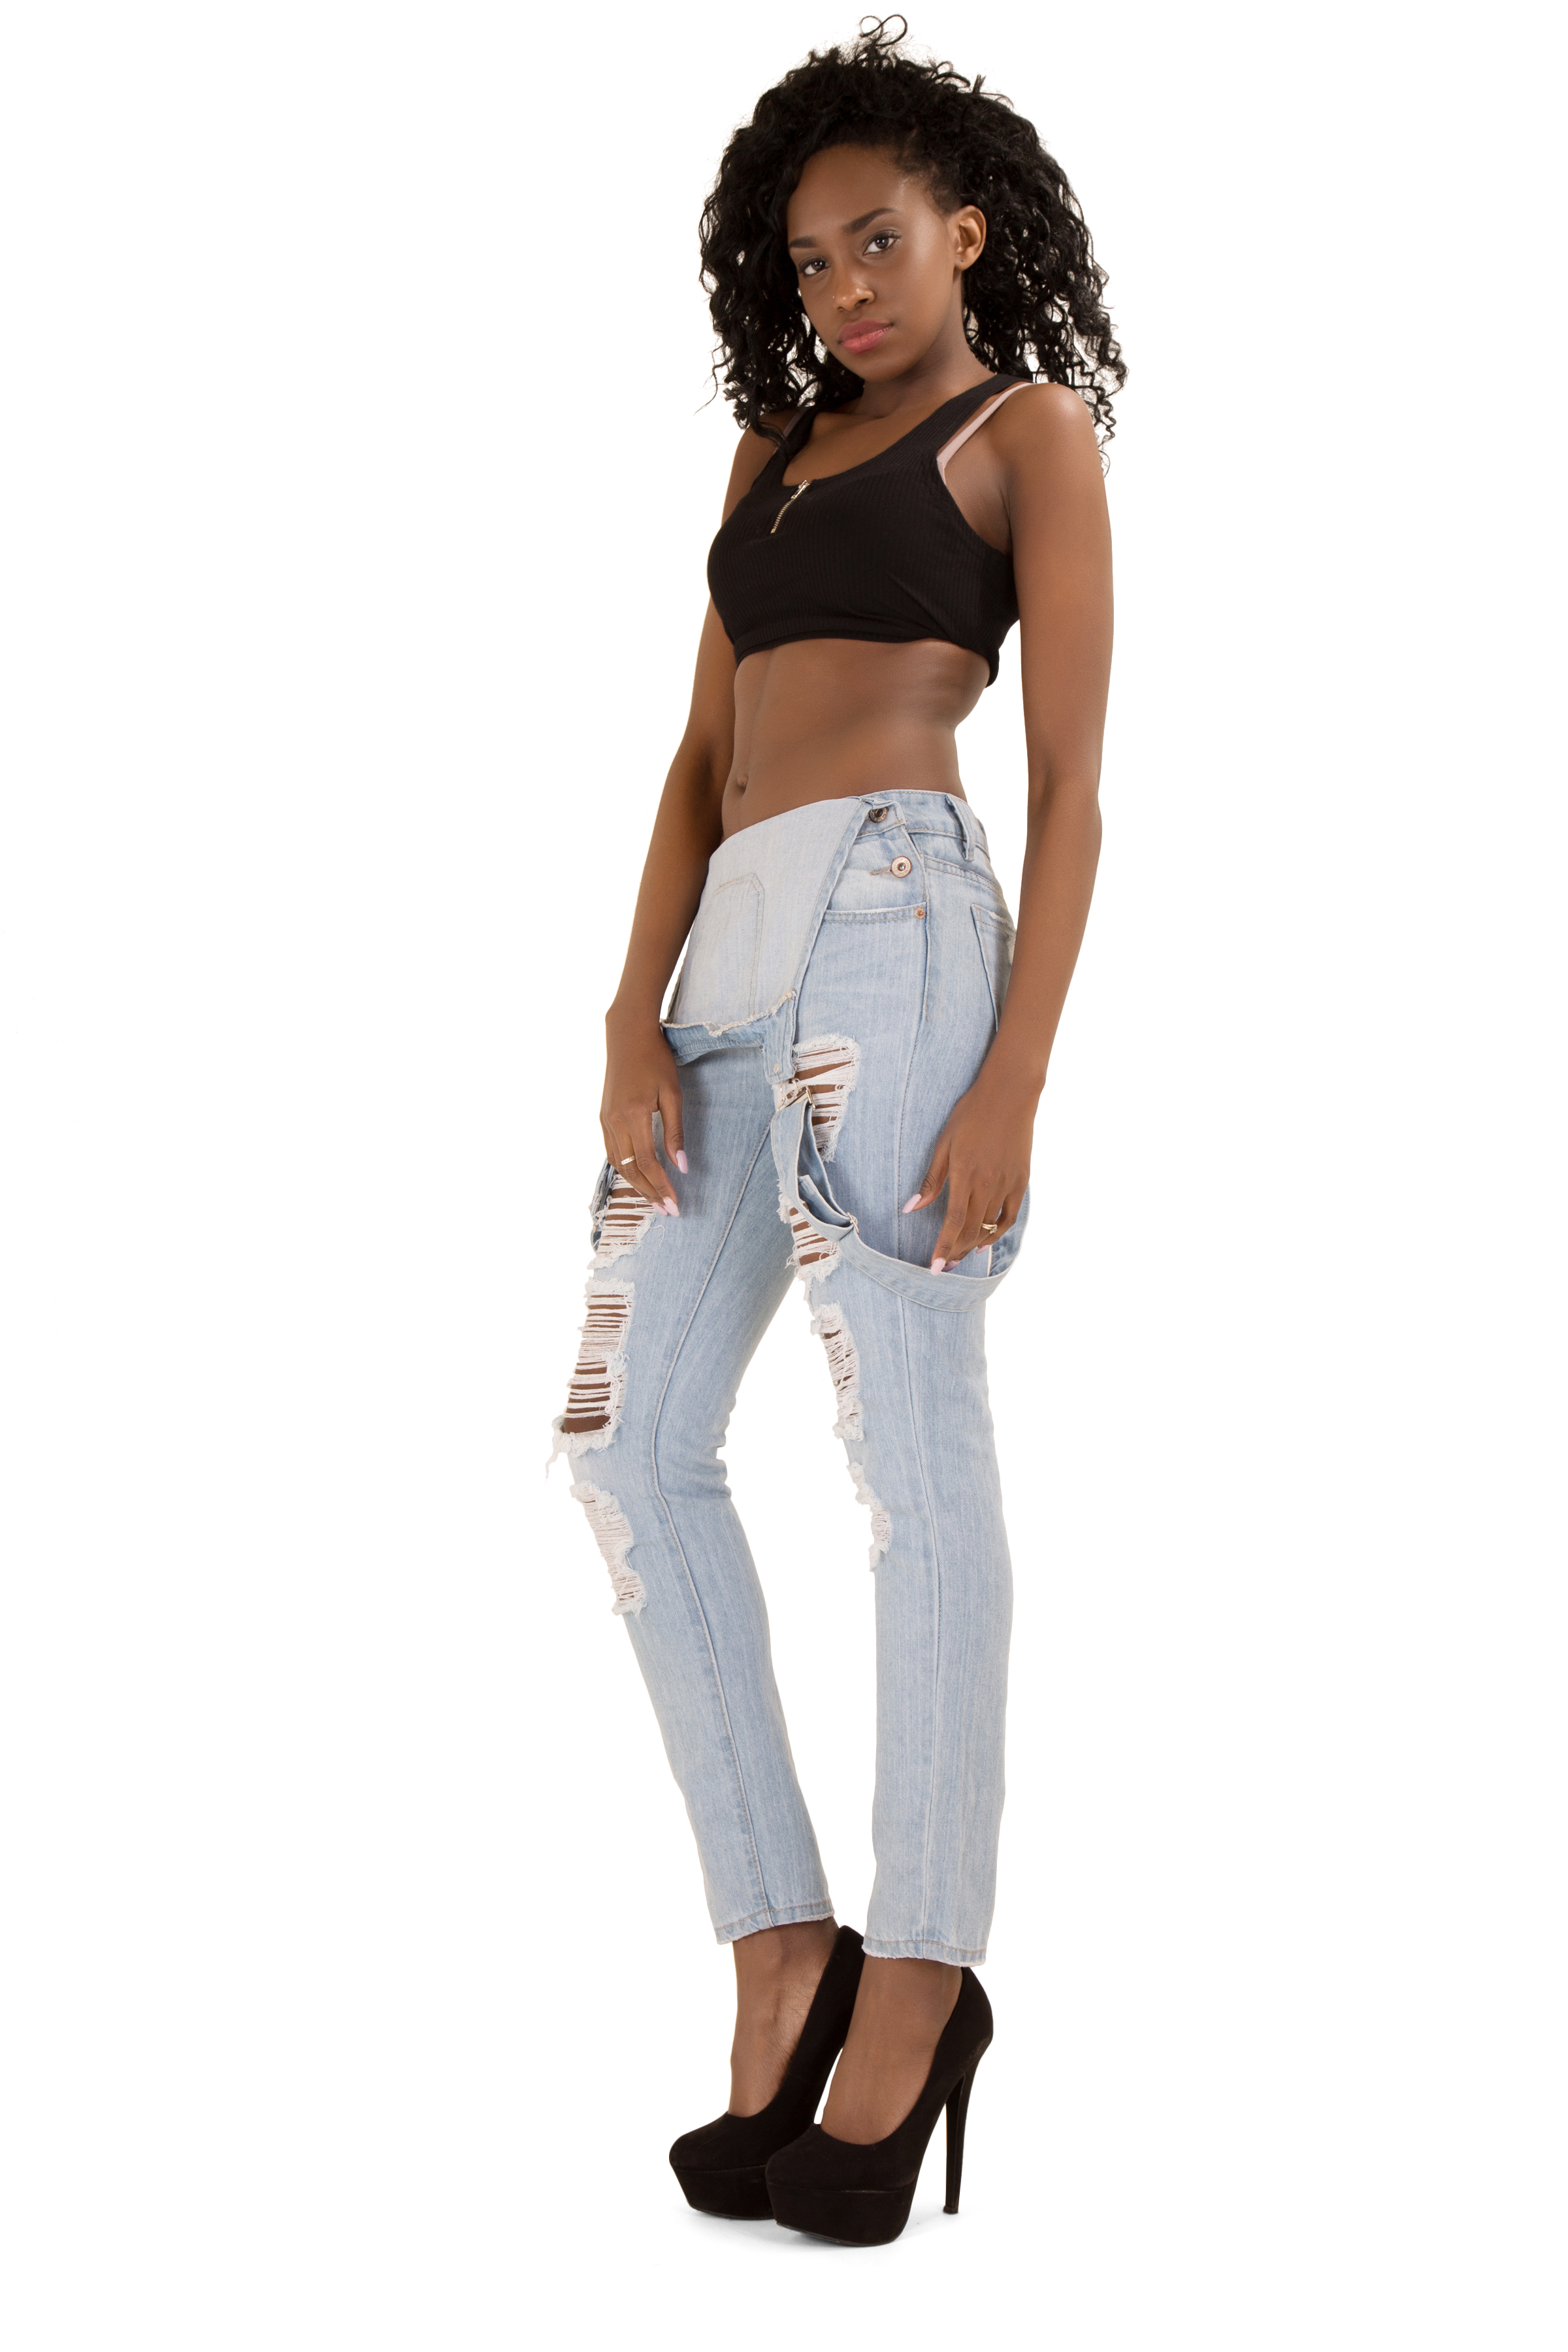 Women new ladies denim ripped dungaree Jeans size 8 10 12 14